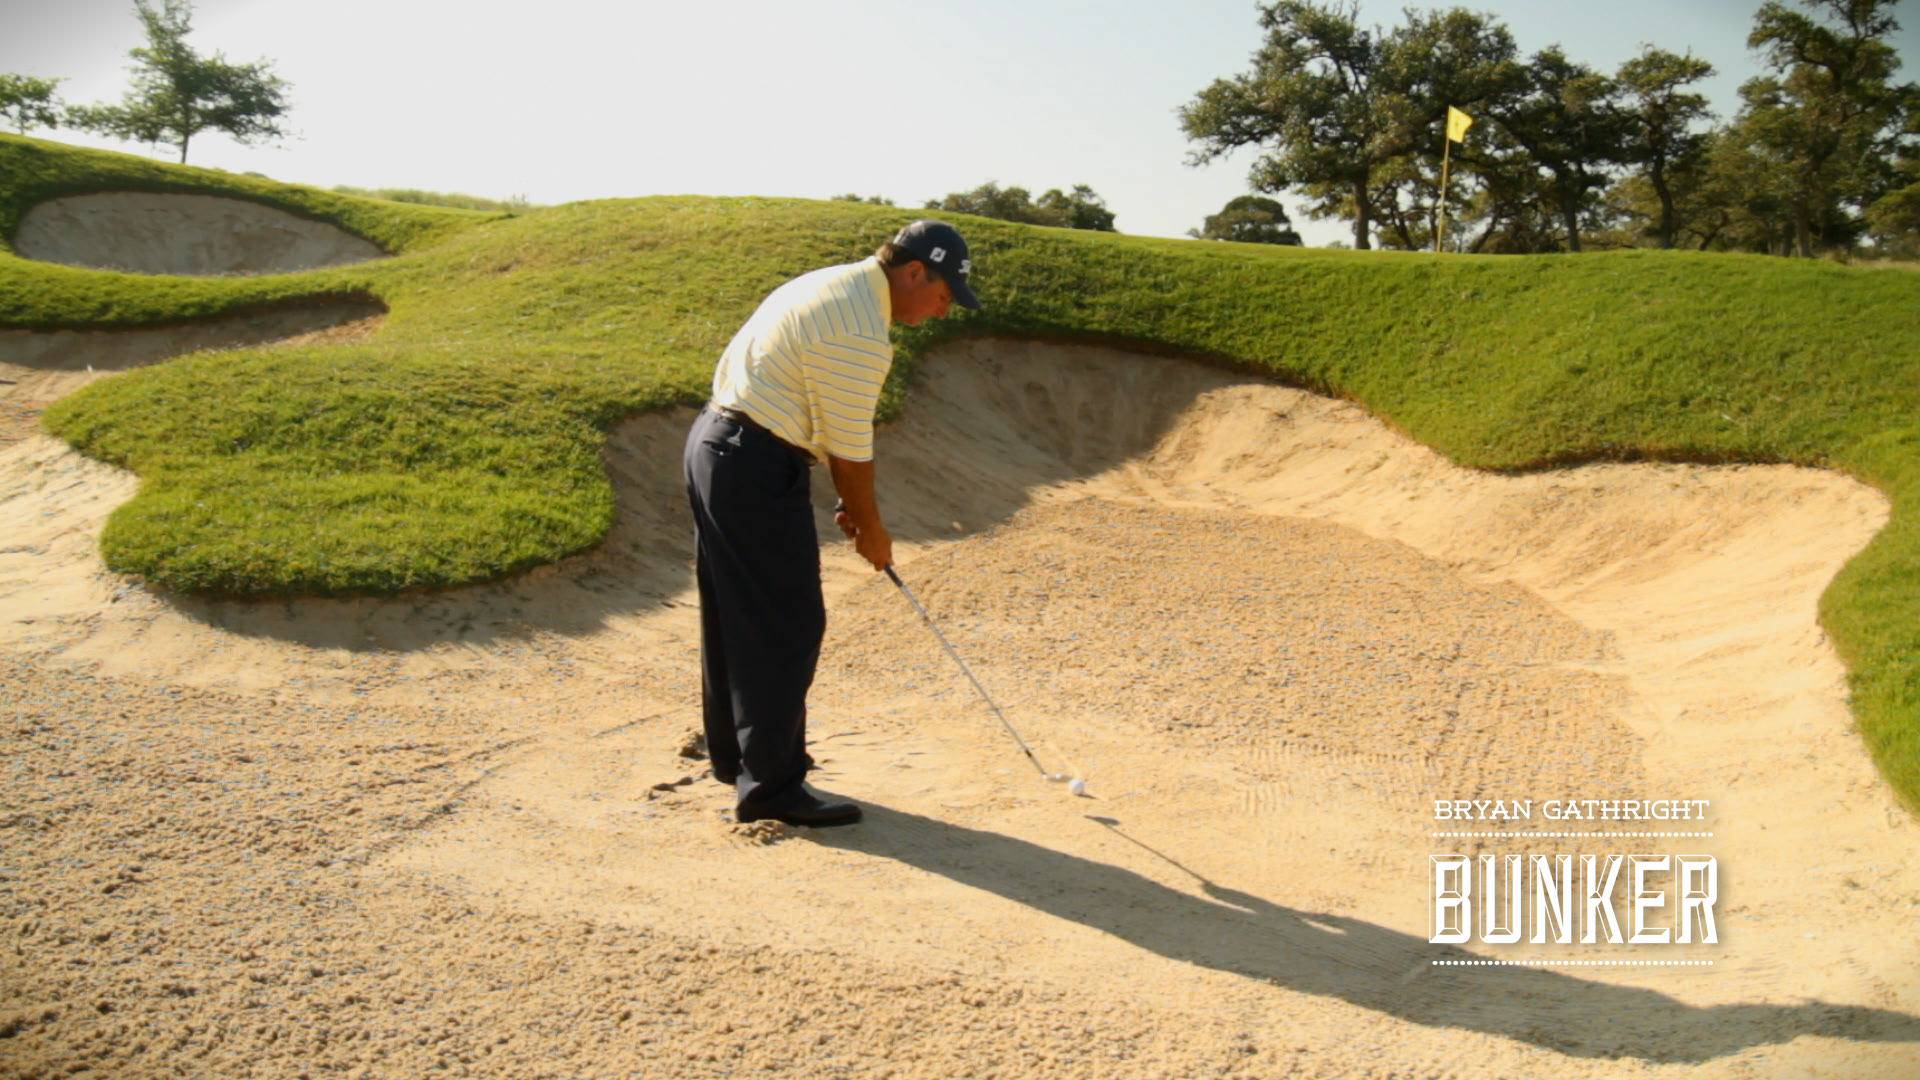 Bunkers: Common Faults and Fixes Part 2